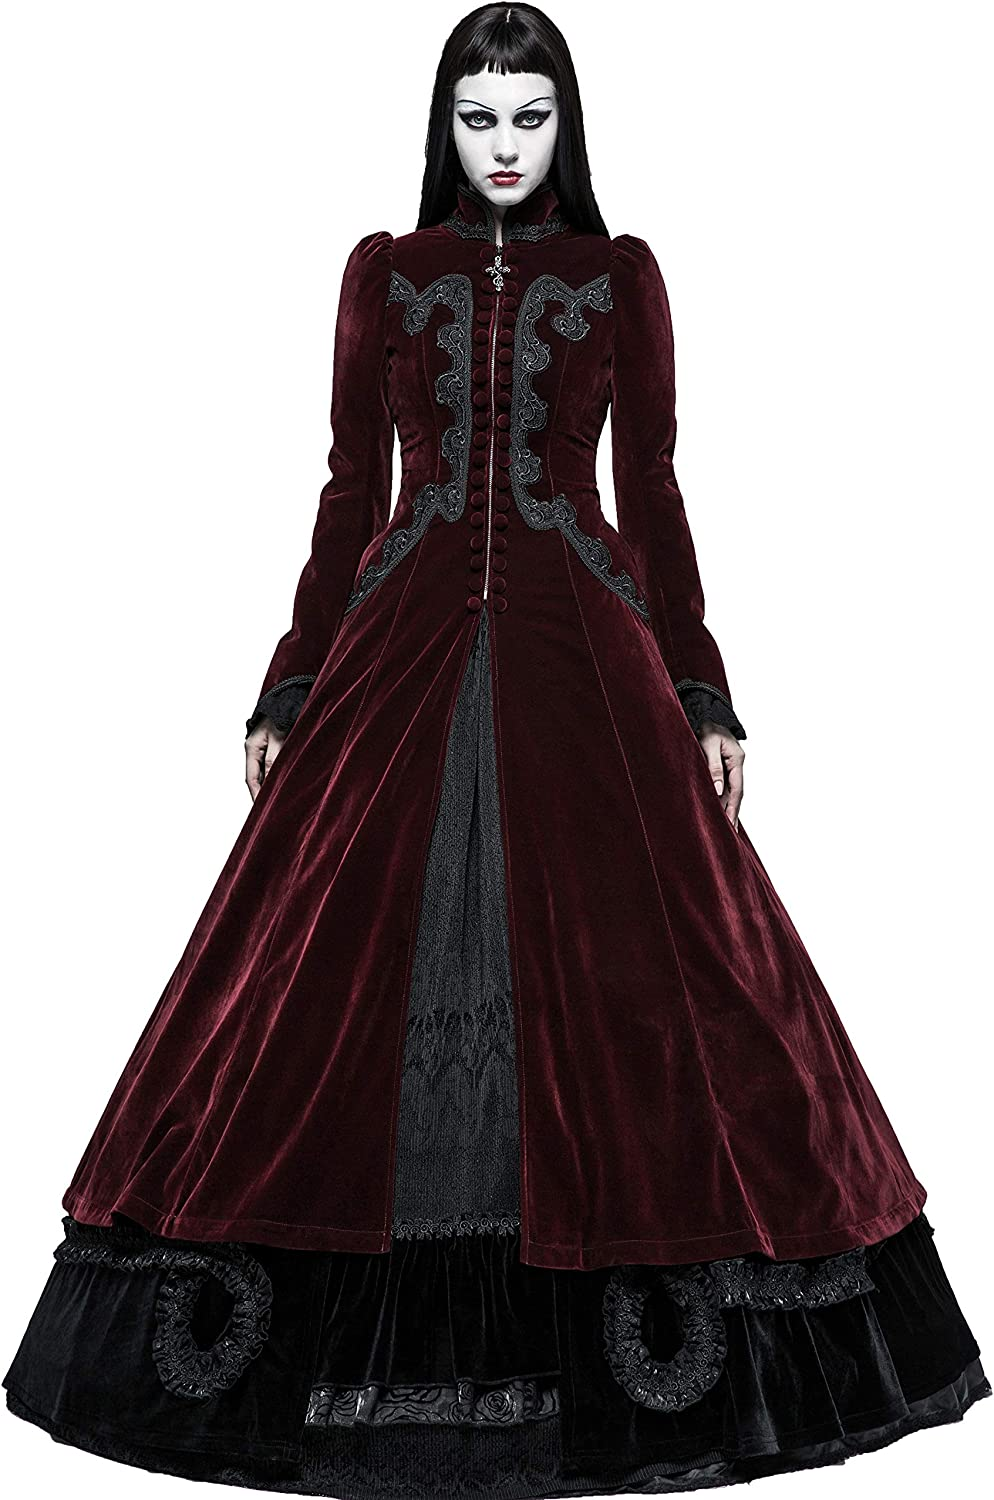 Punk Rave Women's Wine Red Velvet Gothic Victorian Palace Swallow Tail Long Dress Coat